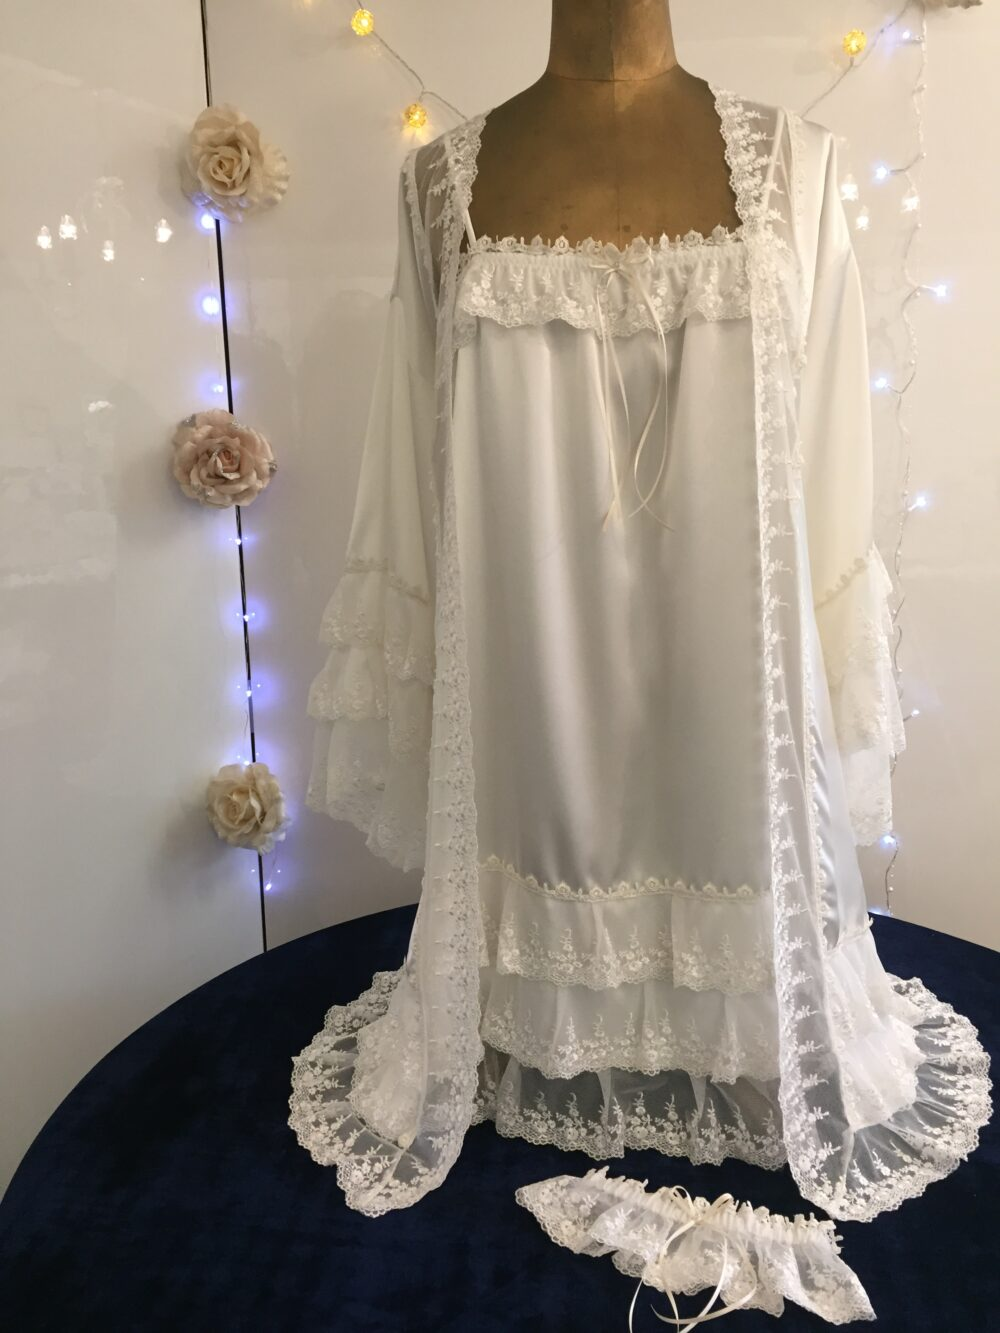 Something-Special-Negligee-set